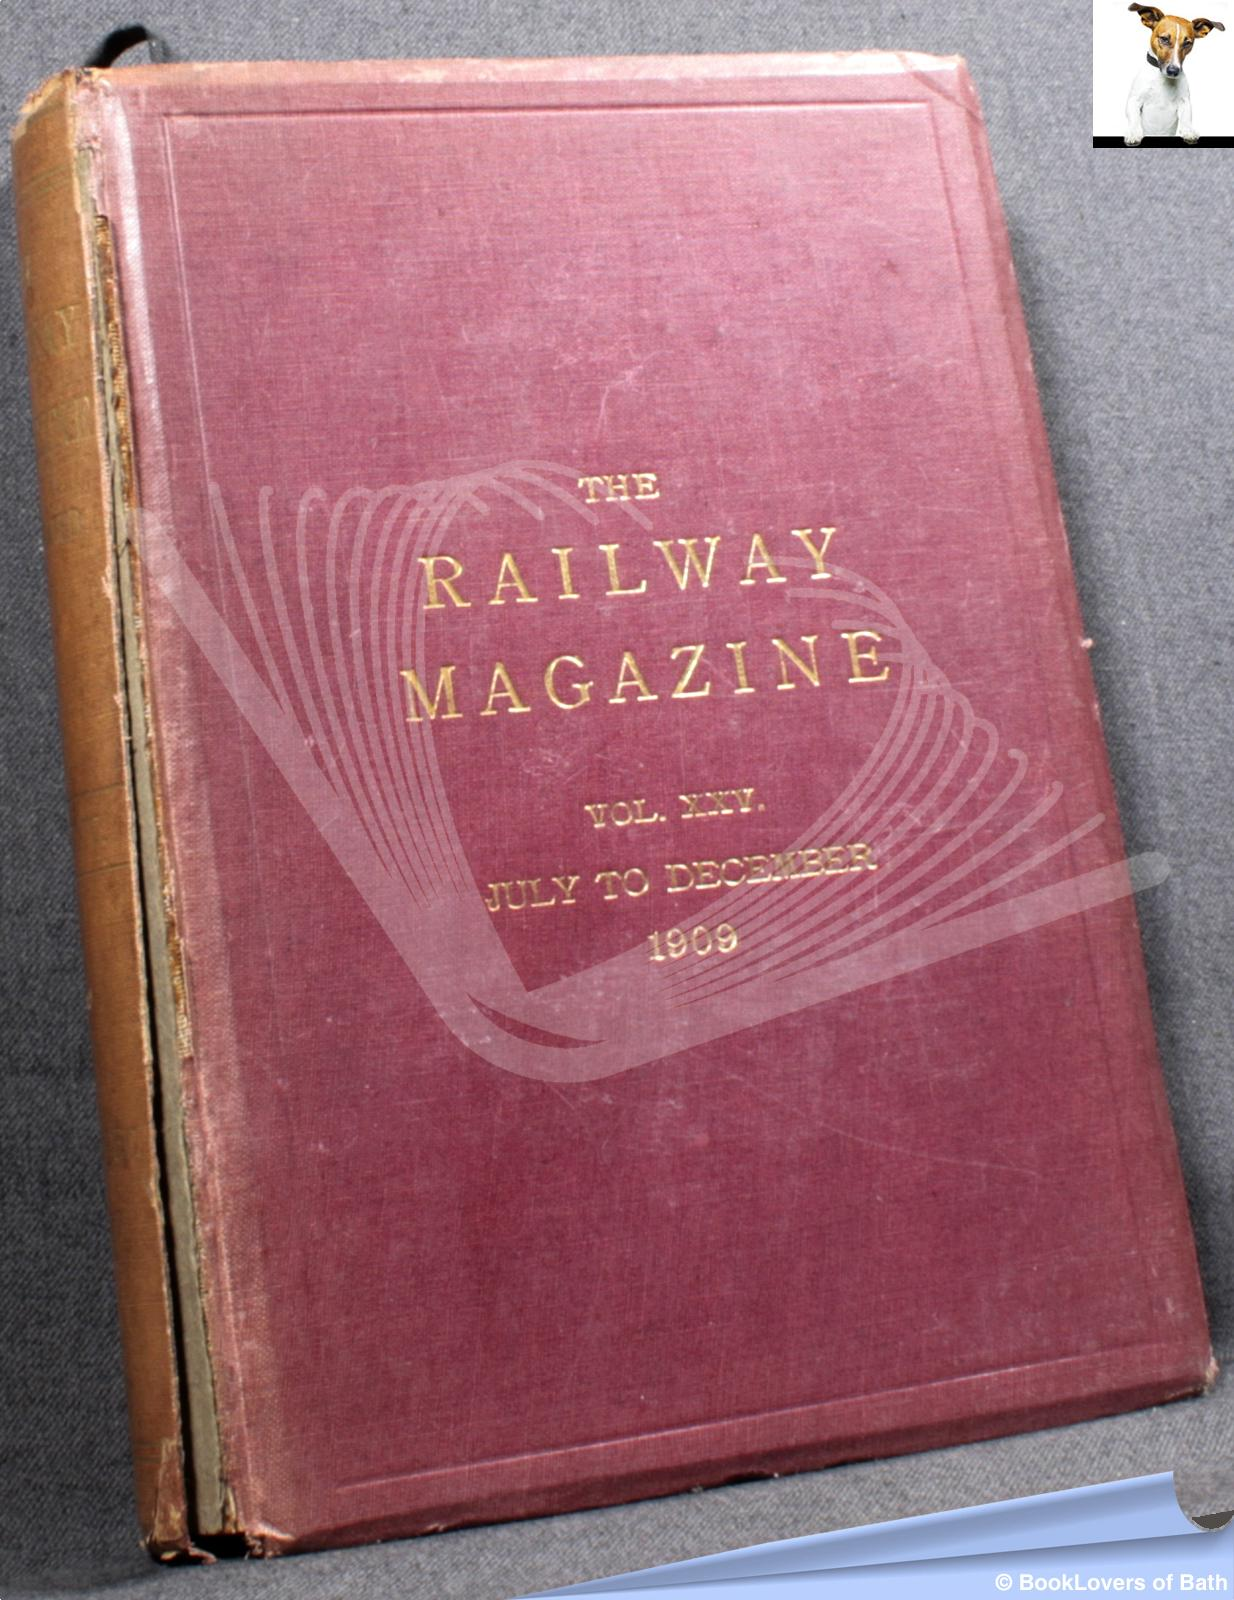 The Railway Magazine Vol. XXV July to December 1909 - Anon.